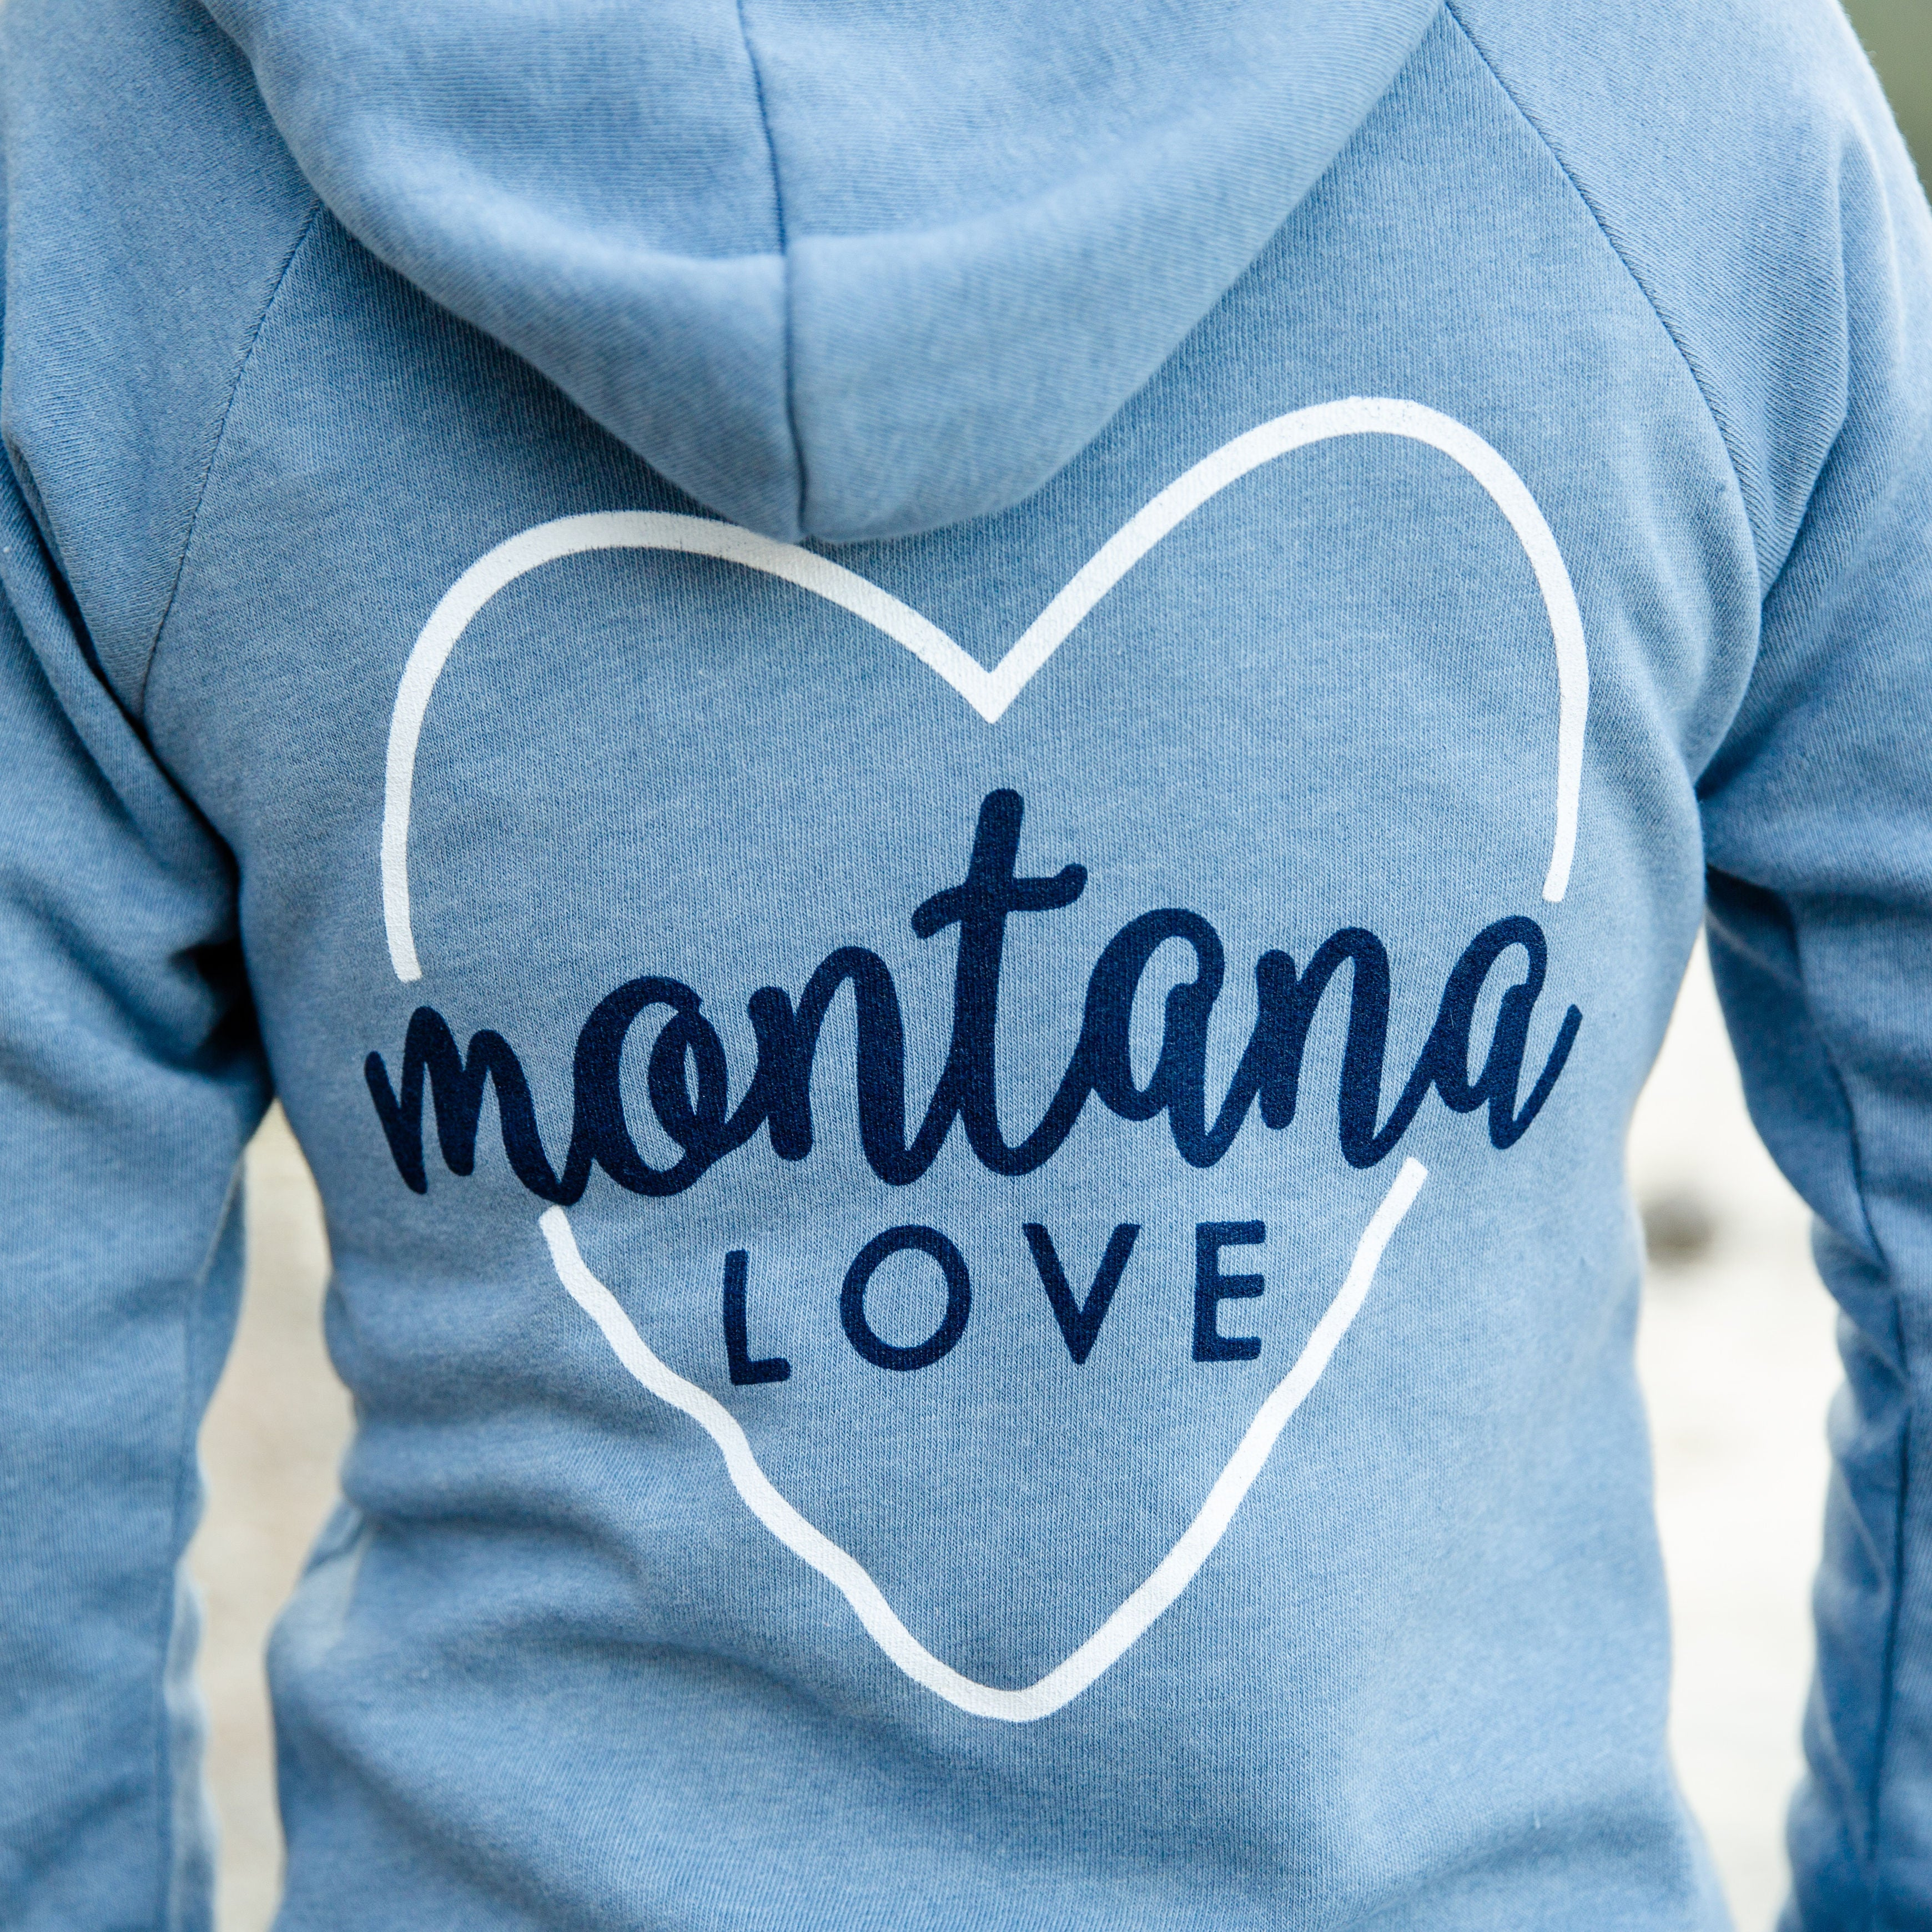 Montana Love Angel Fleece Full Zip Hoodie in Stonewash